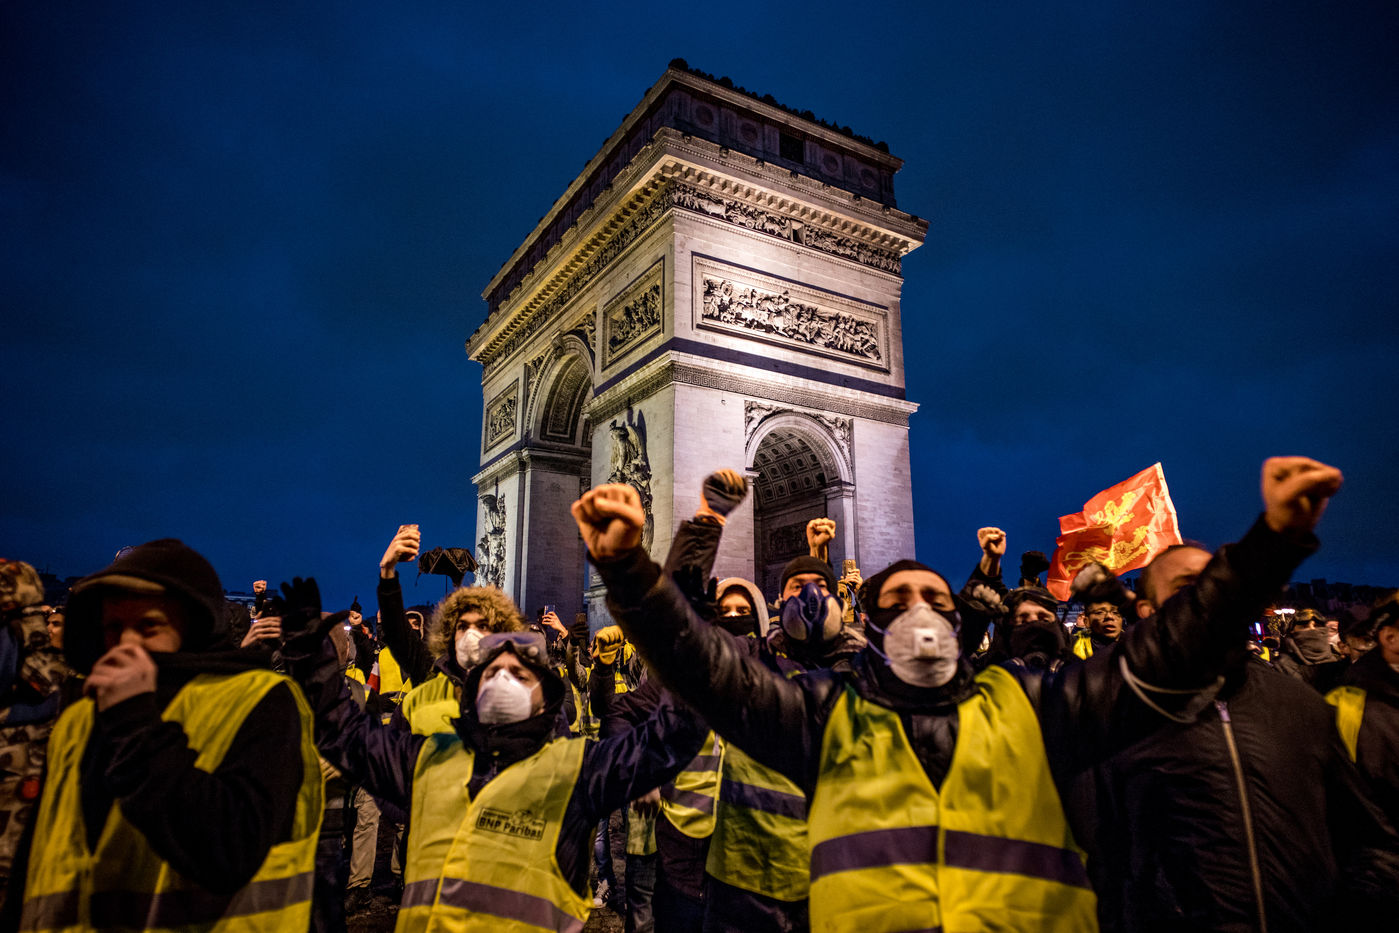 State of insurrection - Yellow vests - Paris